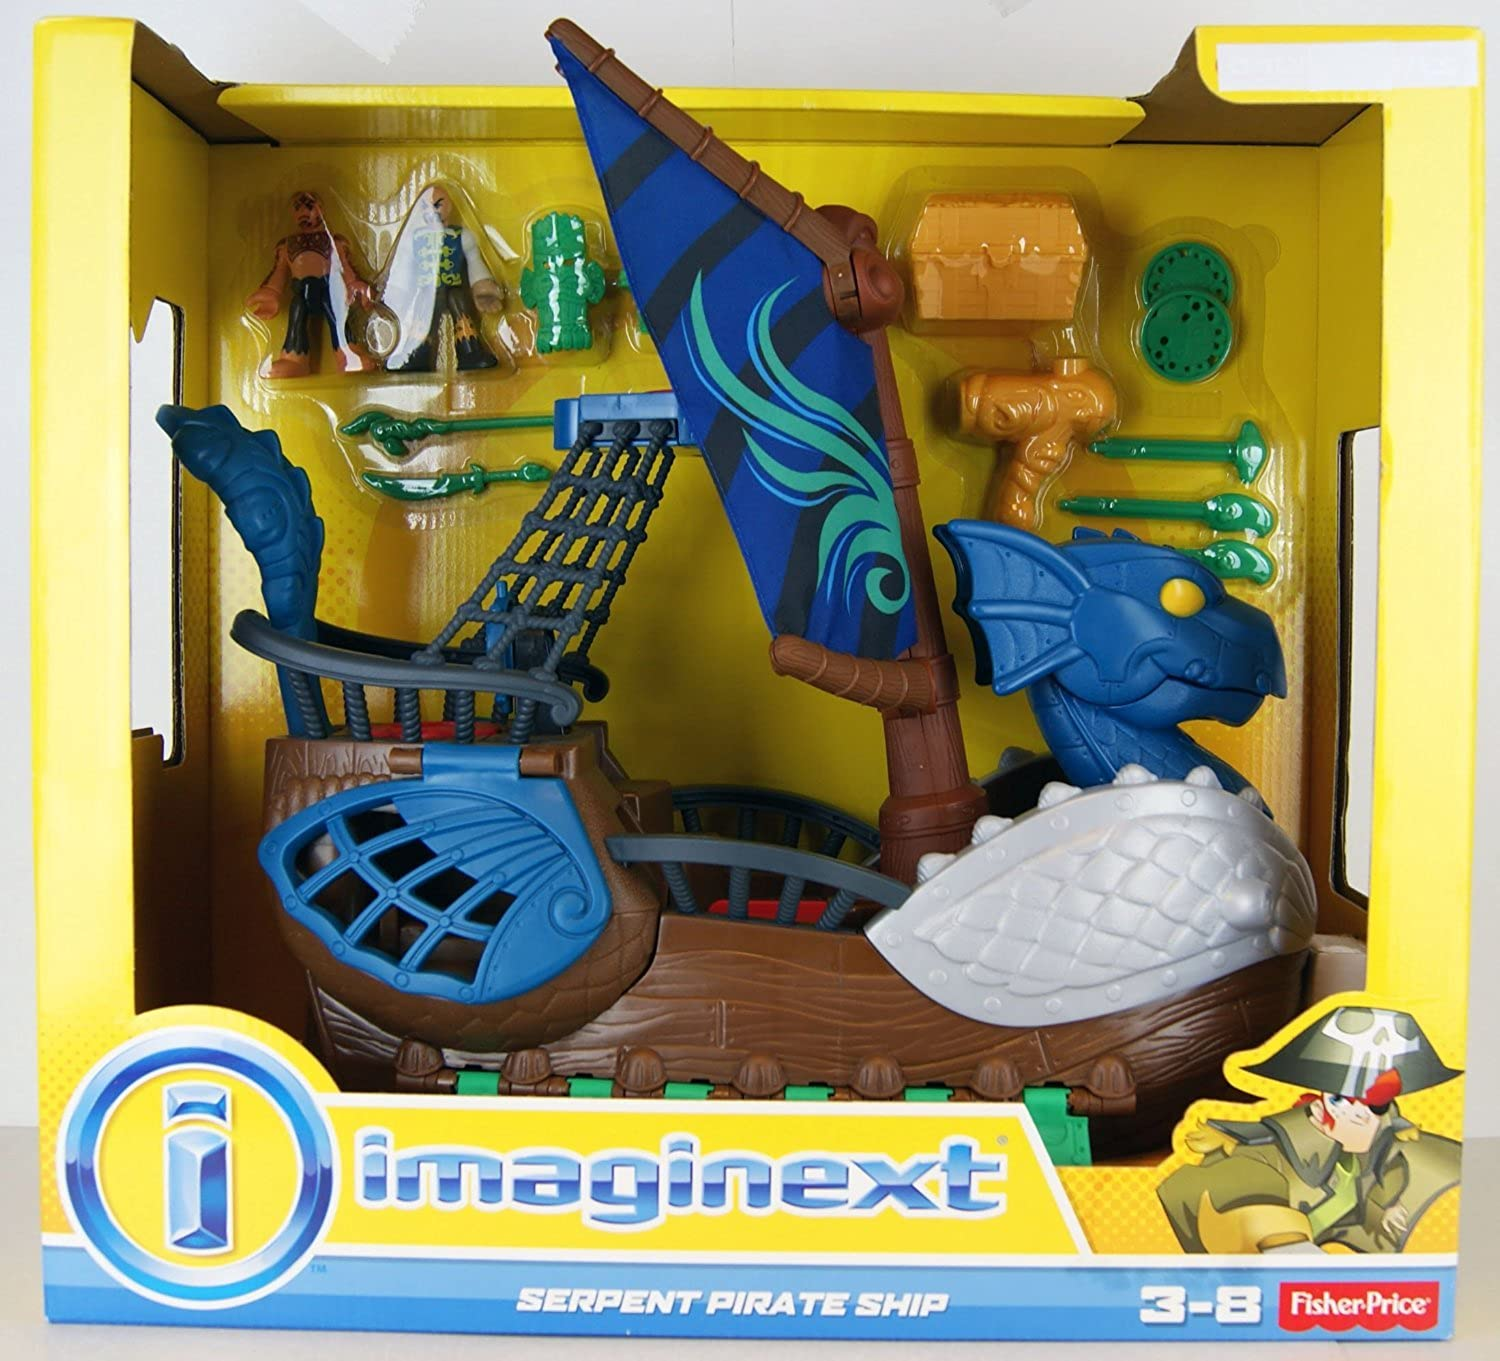 Fisher-Price - Imaginext - Big Serpent Pirate Ship - bluee - incl. 2 Figures and extras